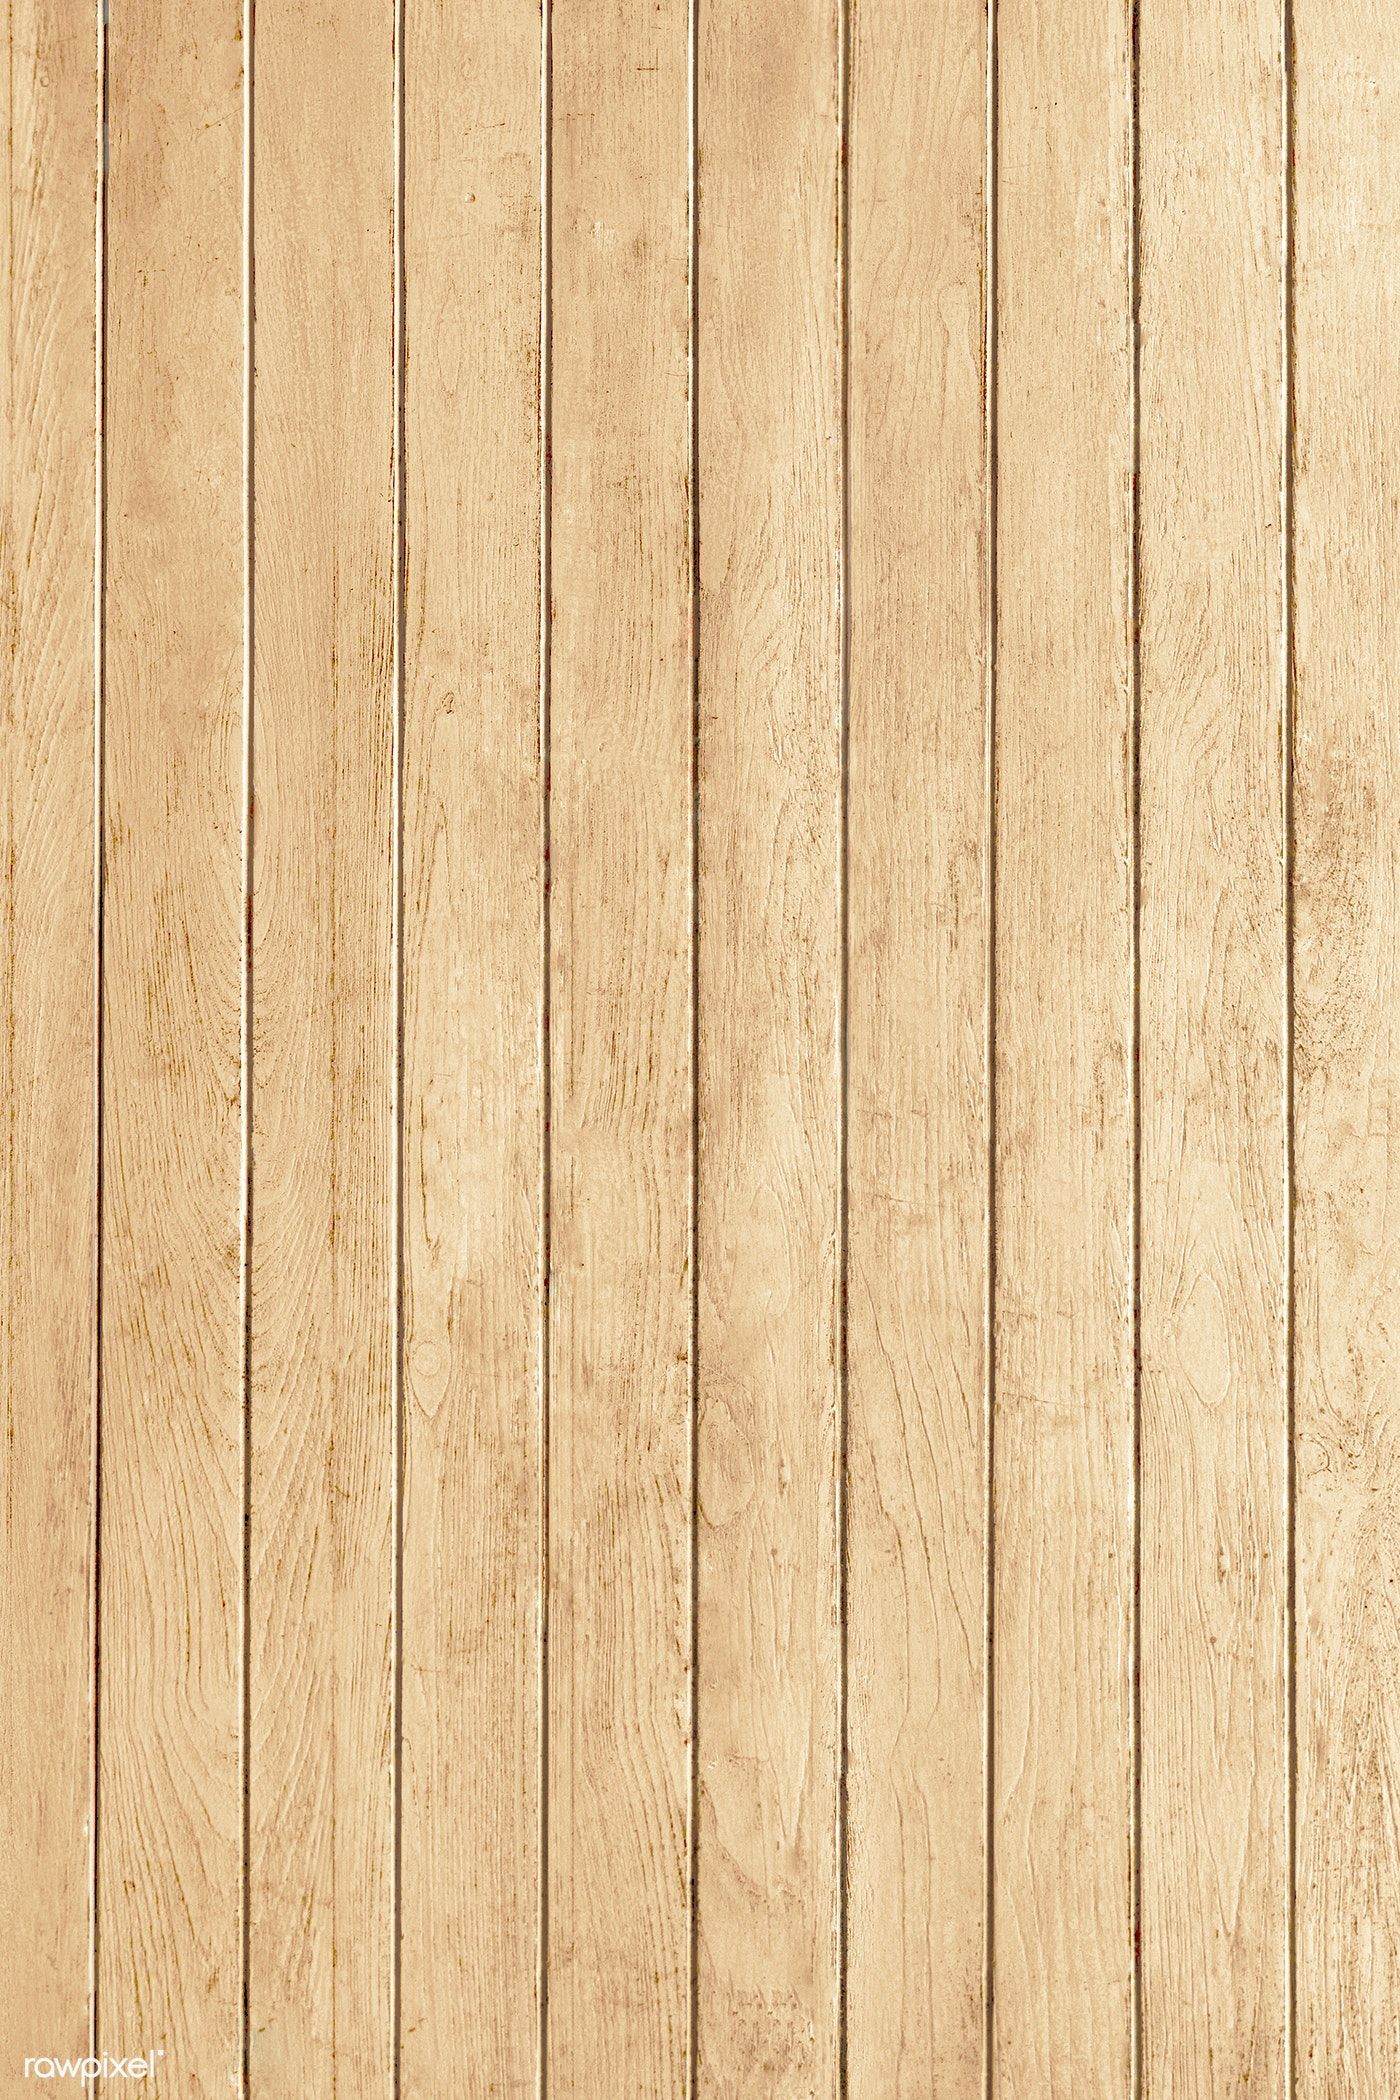 Brown Oak Wood Textured Design Background Free Image By Rawpixel Com Nunny Oak Wood Texture Light Wood Texture Wood Texture